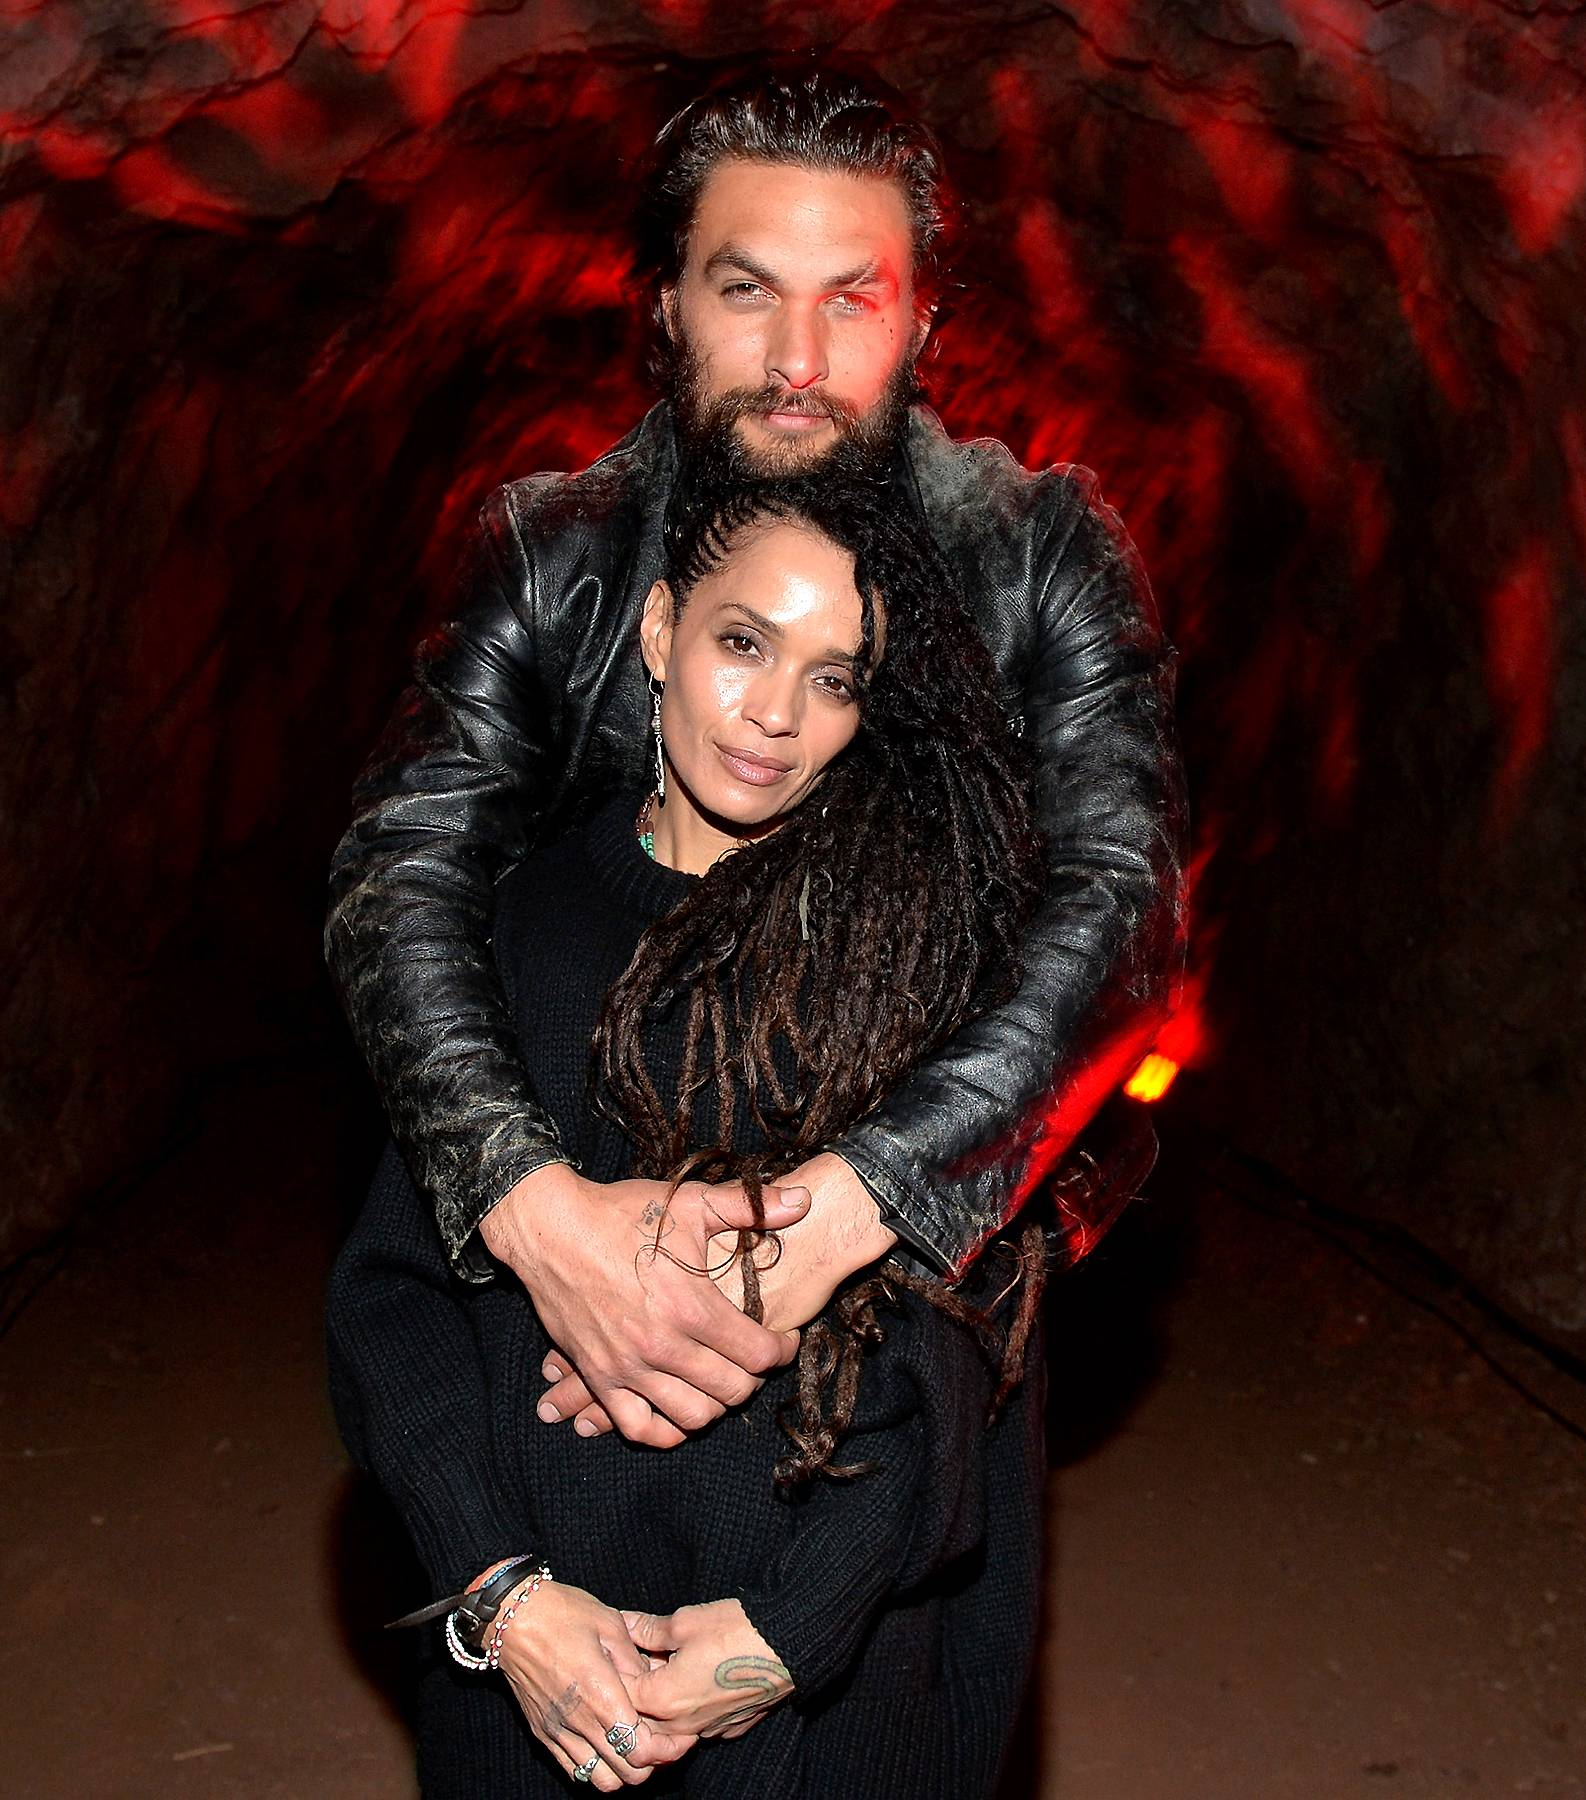 Lisa Bonet and Jason Momoa - Our forever bae Lisa Bonet and the actor who played Khalesi's old TV flame Kahl Drago, Jason Momoa tied the knot making for one of the most beautiful couples ever to grace us.(Photo: Alberto E. Rodriguez/Getty Images)